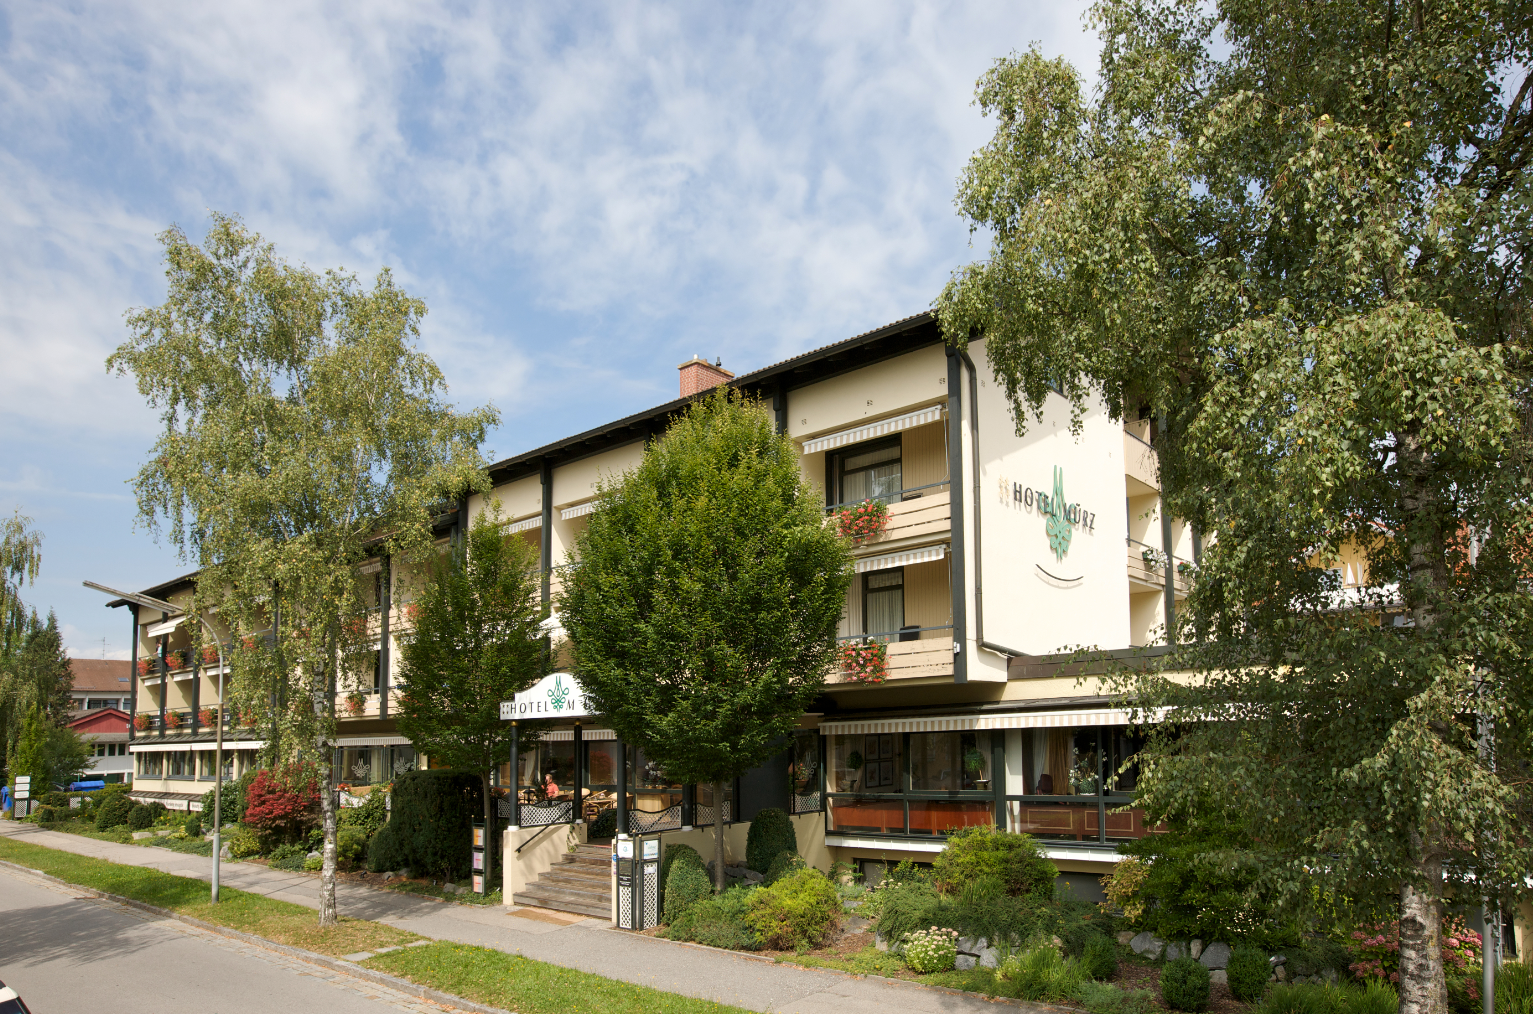 Das Hotel Mürz in Bad Füssing